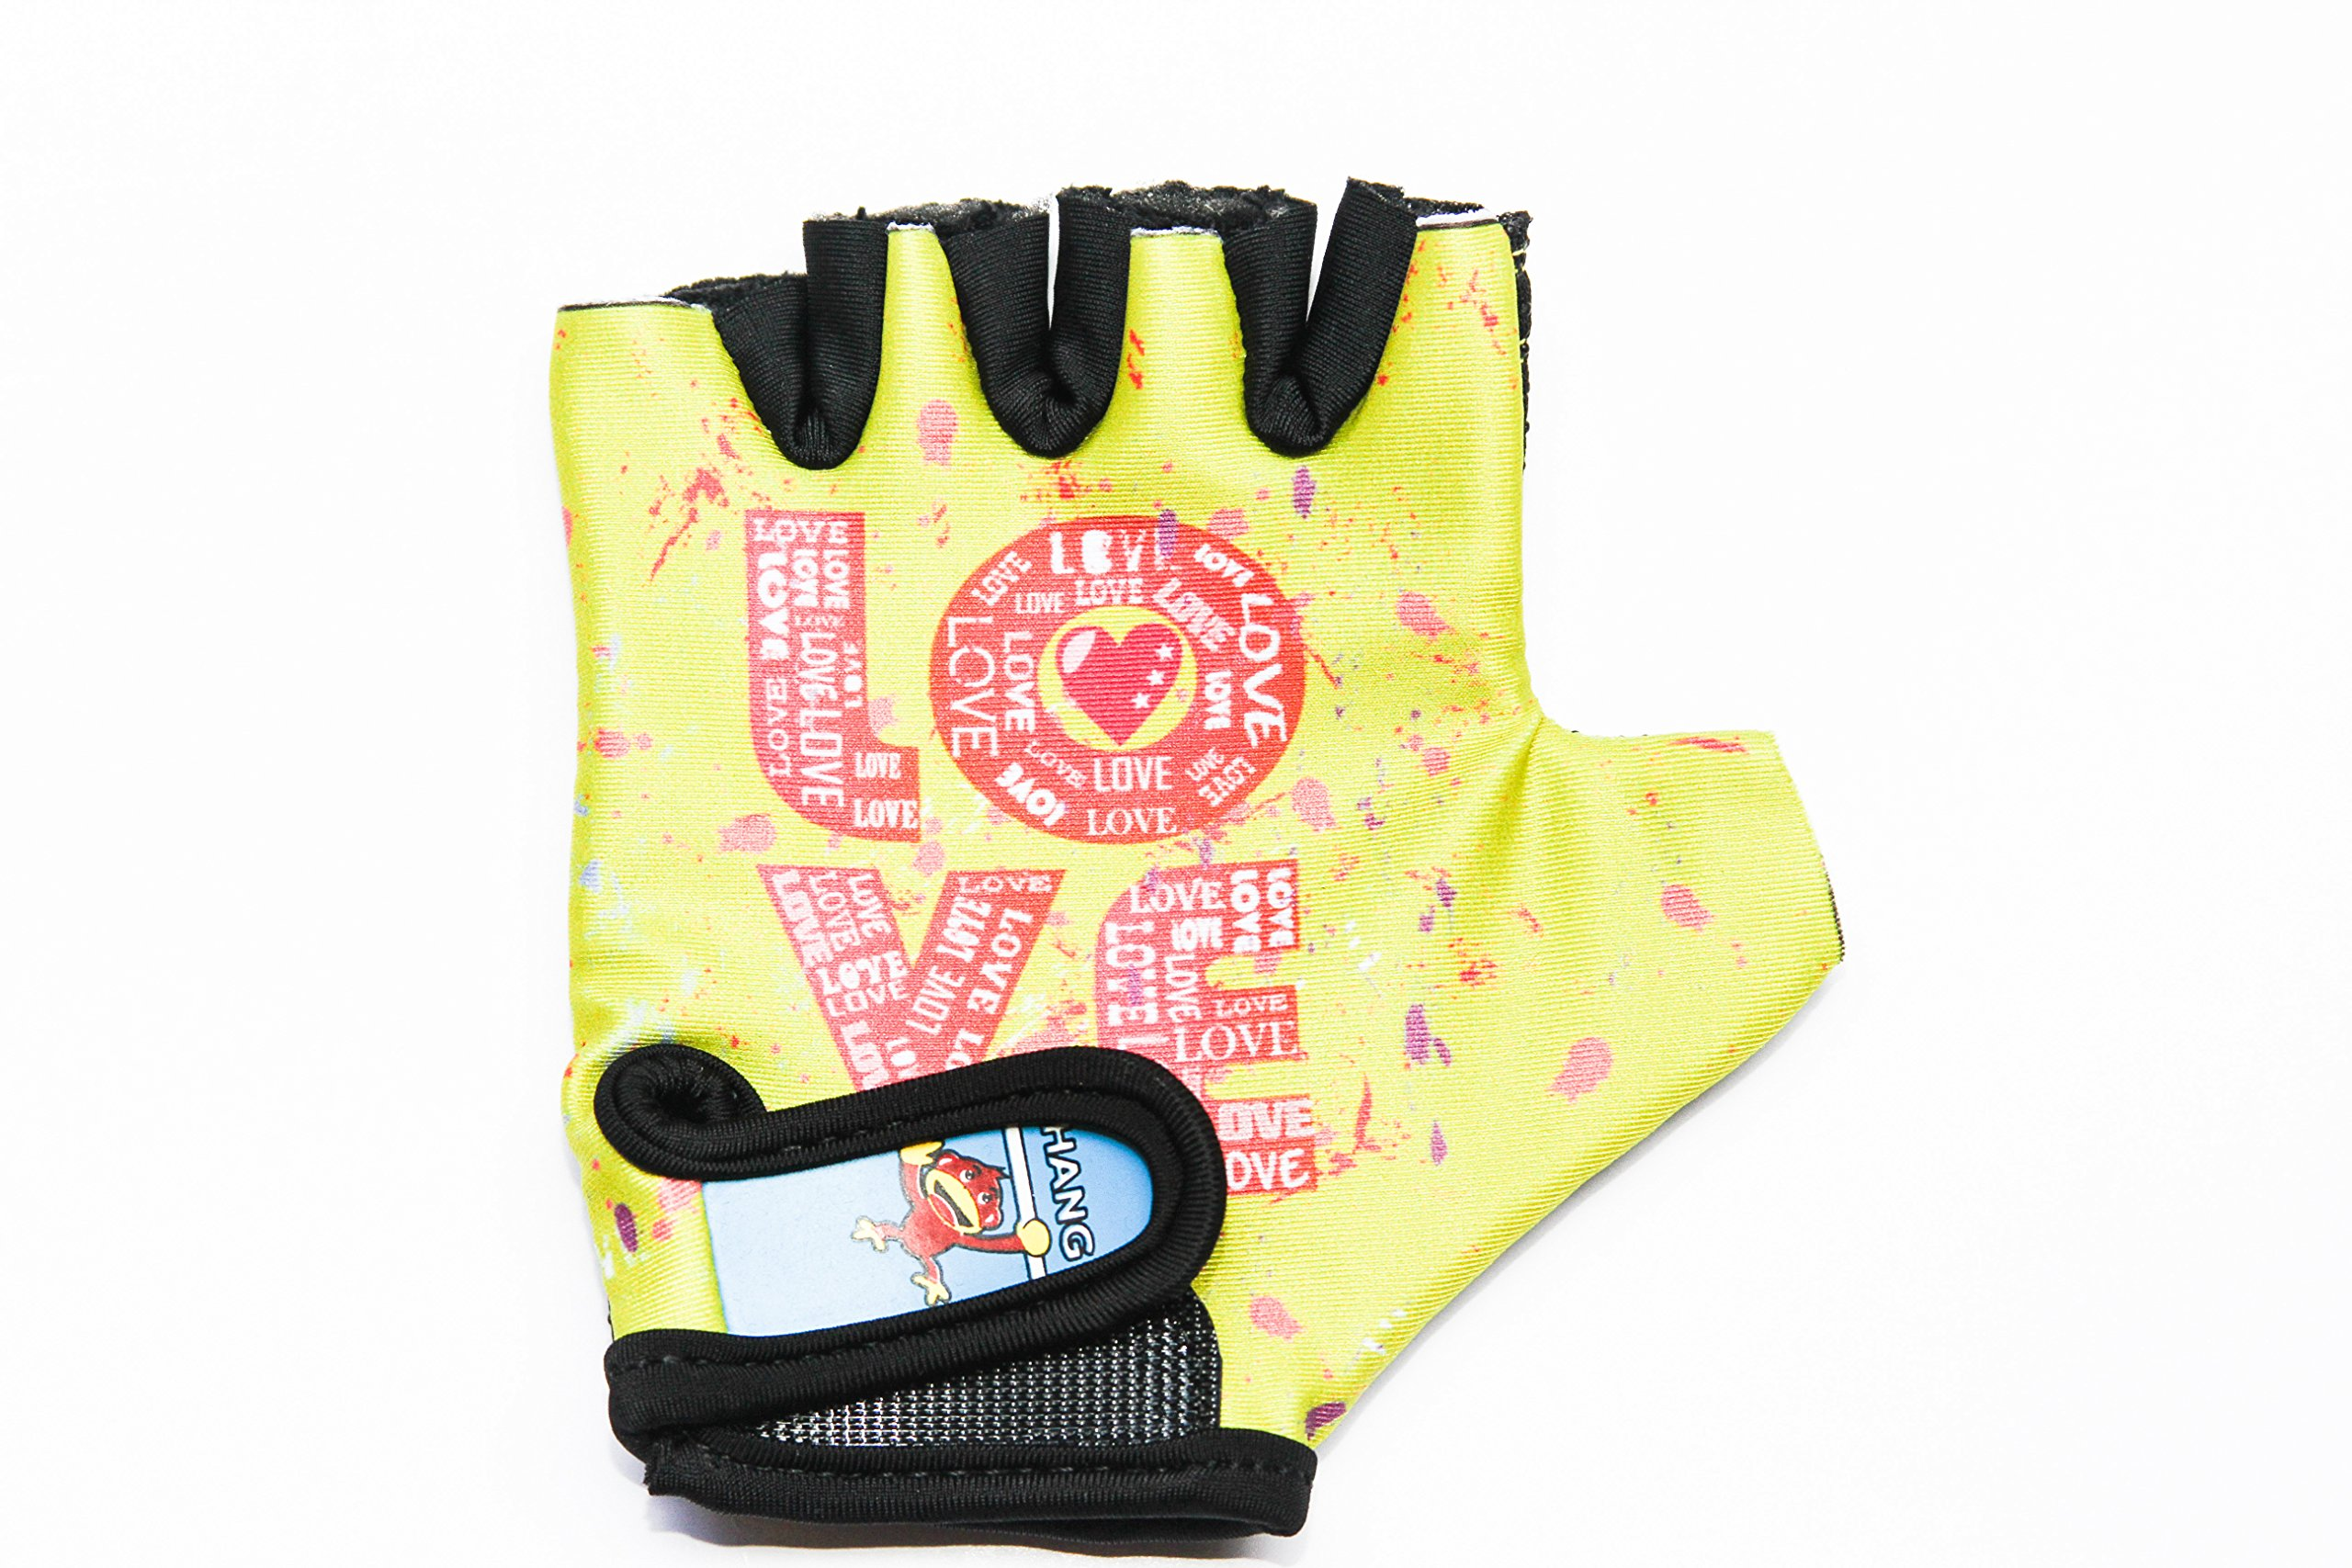 HANG Monkey Bars Gloves (for Children 7 and 8 Years Old) with Grip Control by HANG (Image #2)